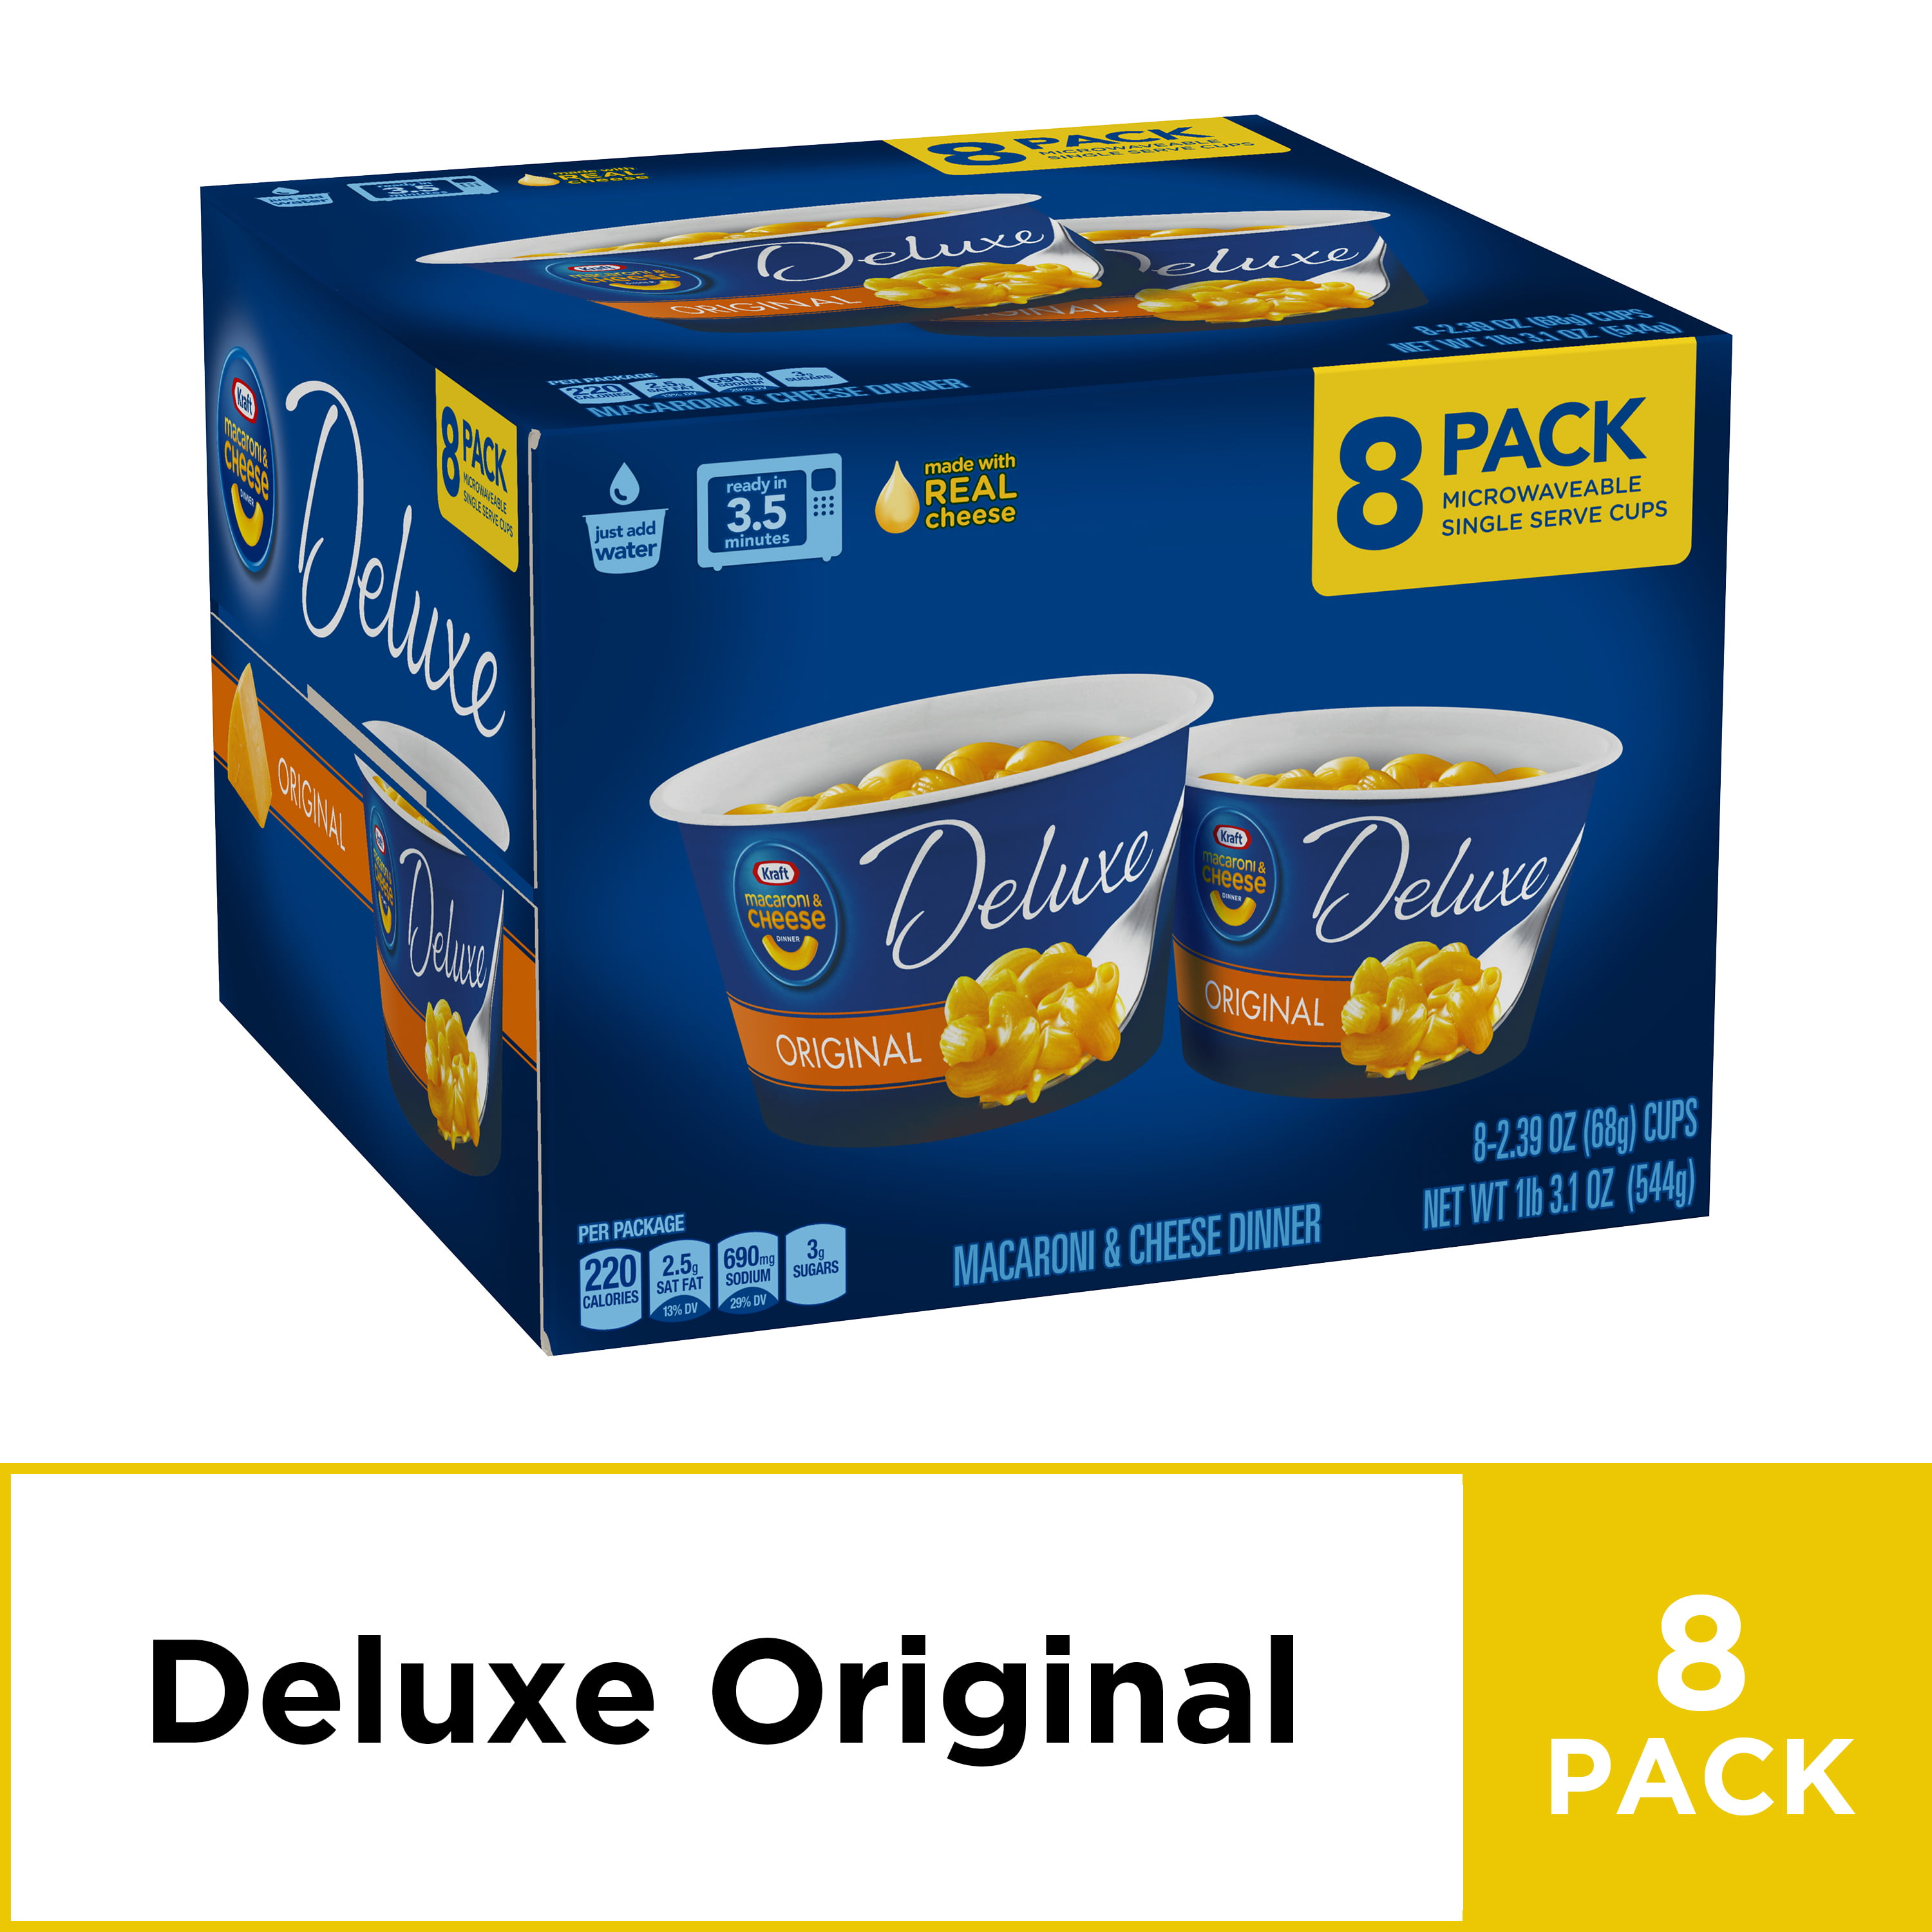 Kraft Deluxe Easy Mac Microwavable Macaroni And Cheese Cups 8 Count Box